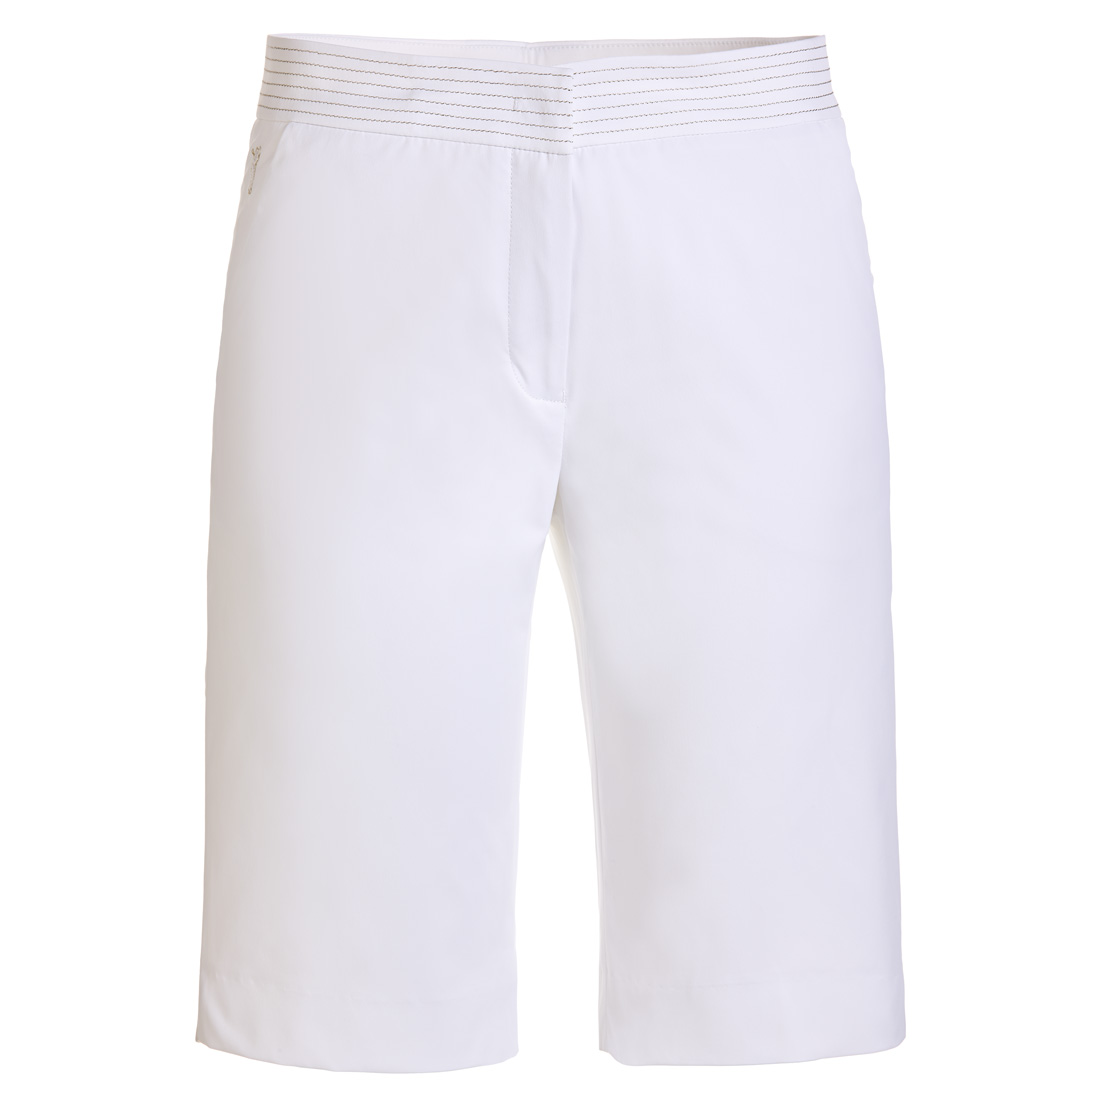 Damen Bermudas Sun Protection Techno Stretch in Regular Fit